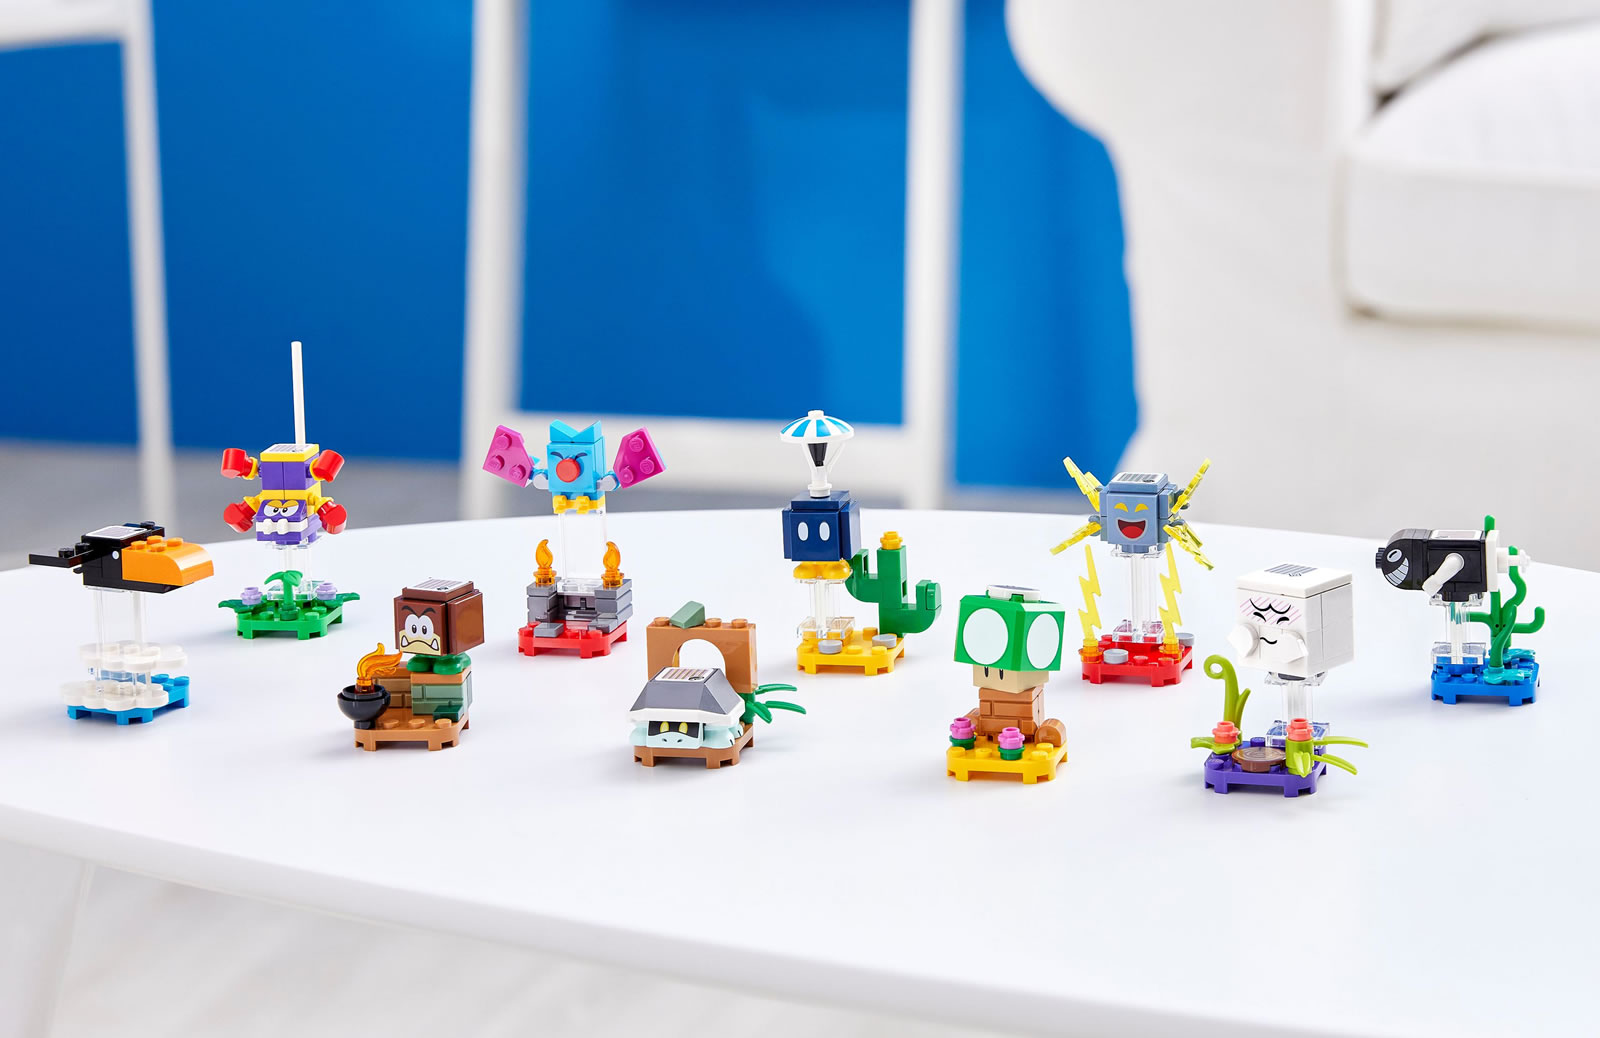 Nintendo s'associe avec LEGO ! - Page 5 Lego-super-mario-73194-character-packs-series-3-2021